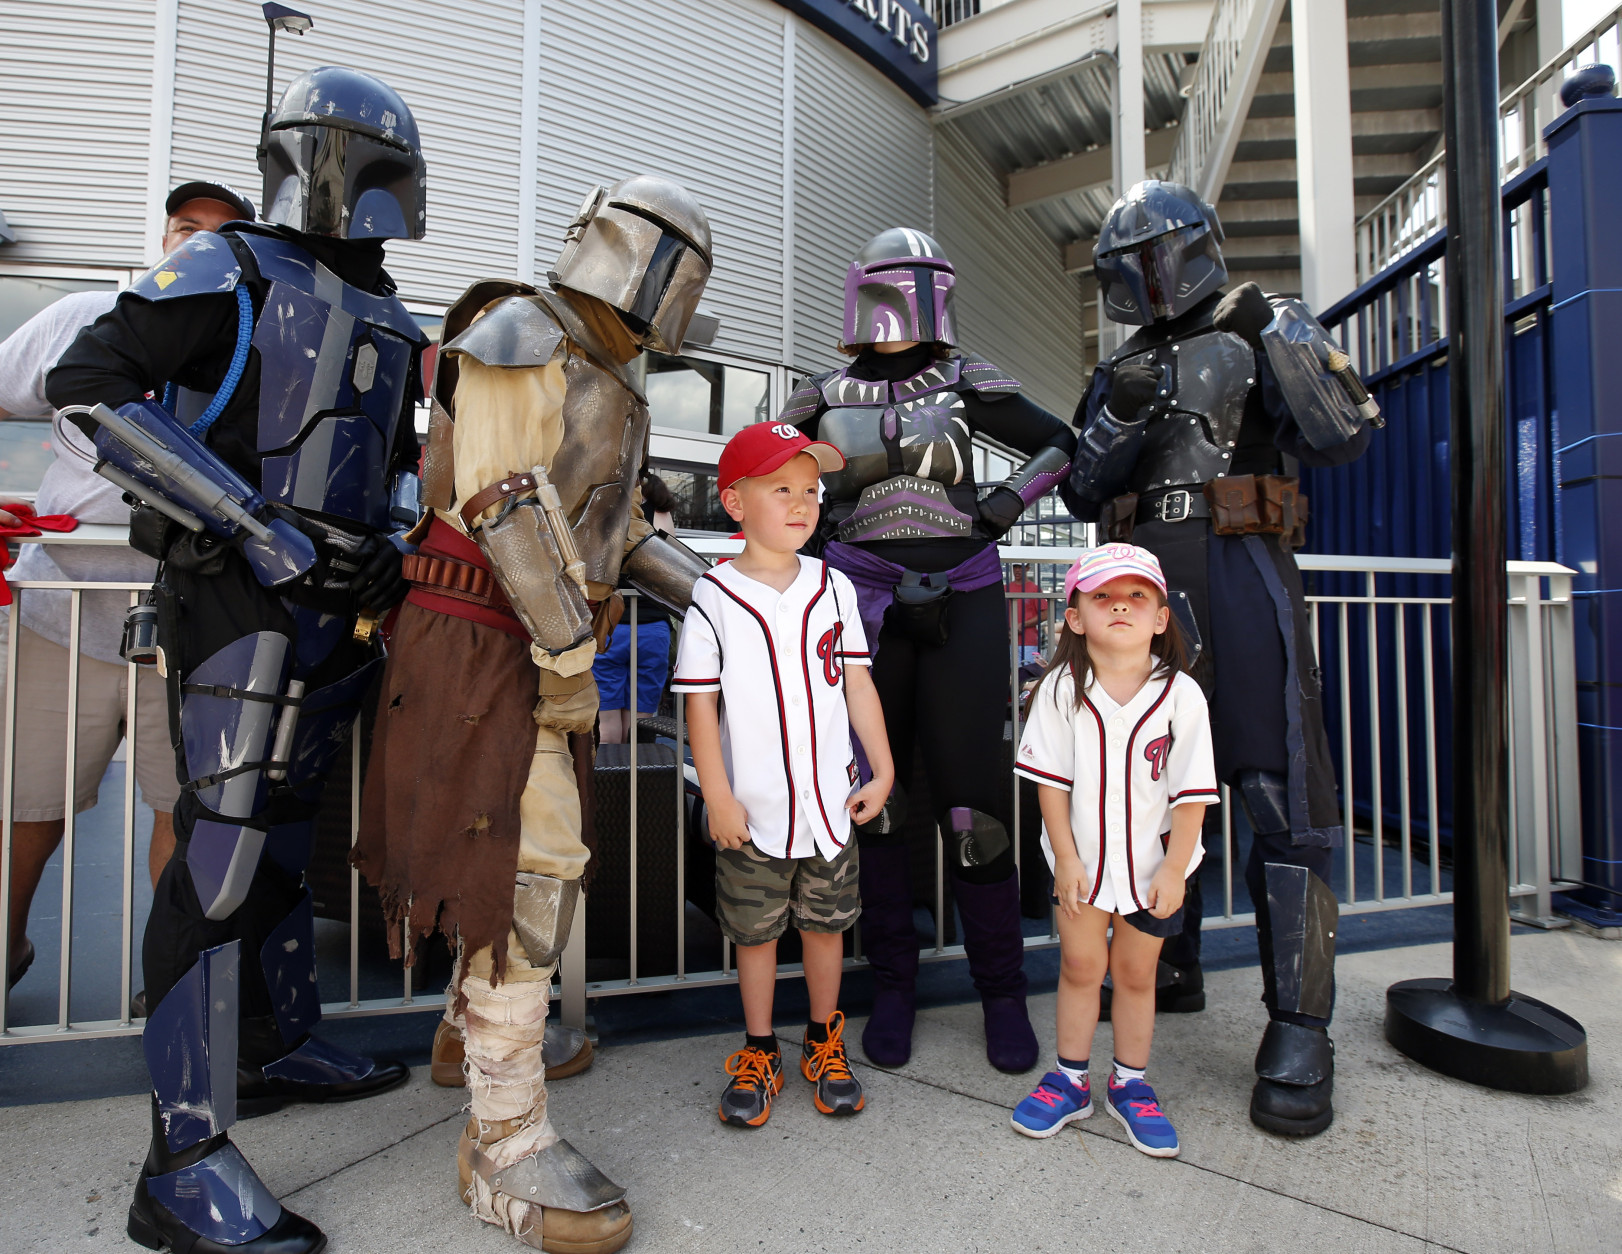 Carter Gamblin, left, 6, and Lauren Gamblin, 4, both from Arlington, Va., pose with Star Wars characters on Star Wars day before a baseball game between the Washington Nationals and the Los Angeles Dodgers at Nationals Park, Sunday, July 19, 2015, in Washington. (AP Photo/Alex Brandon)